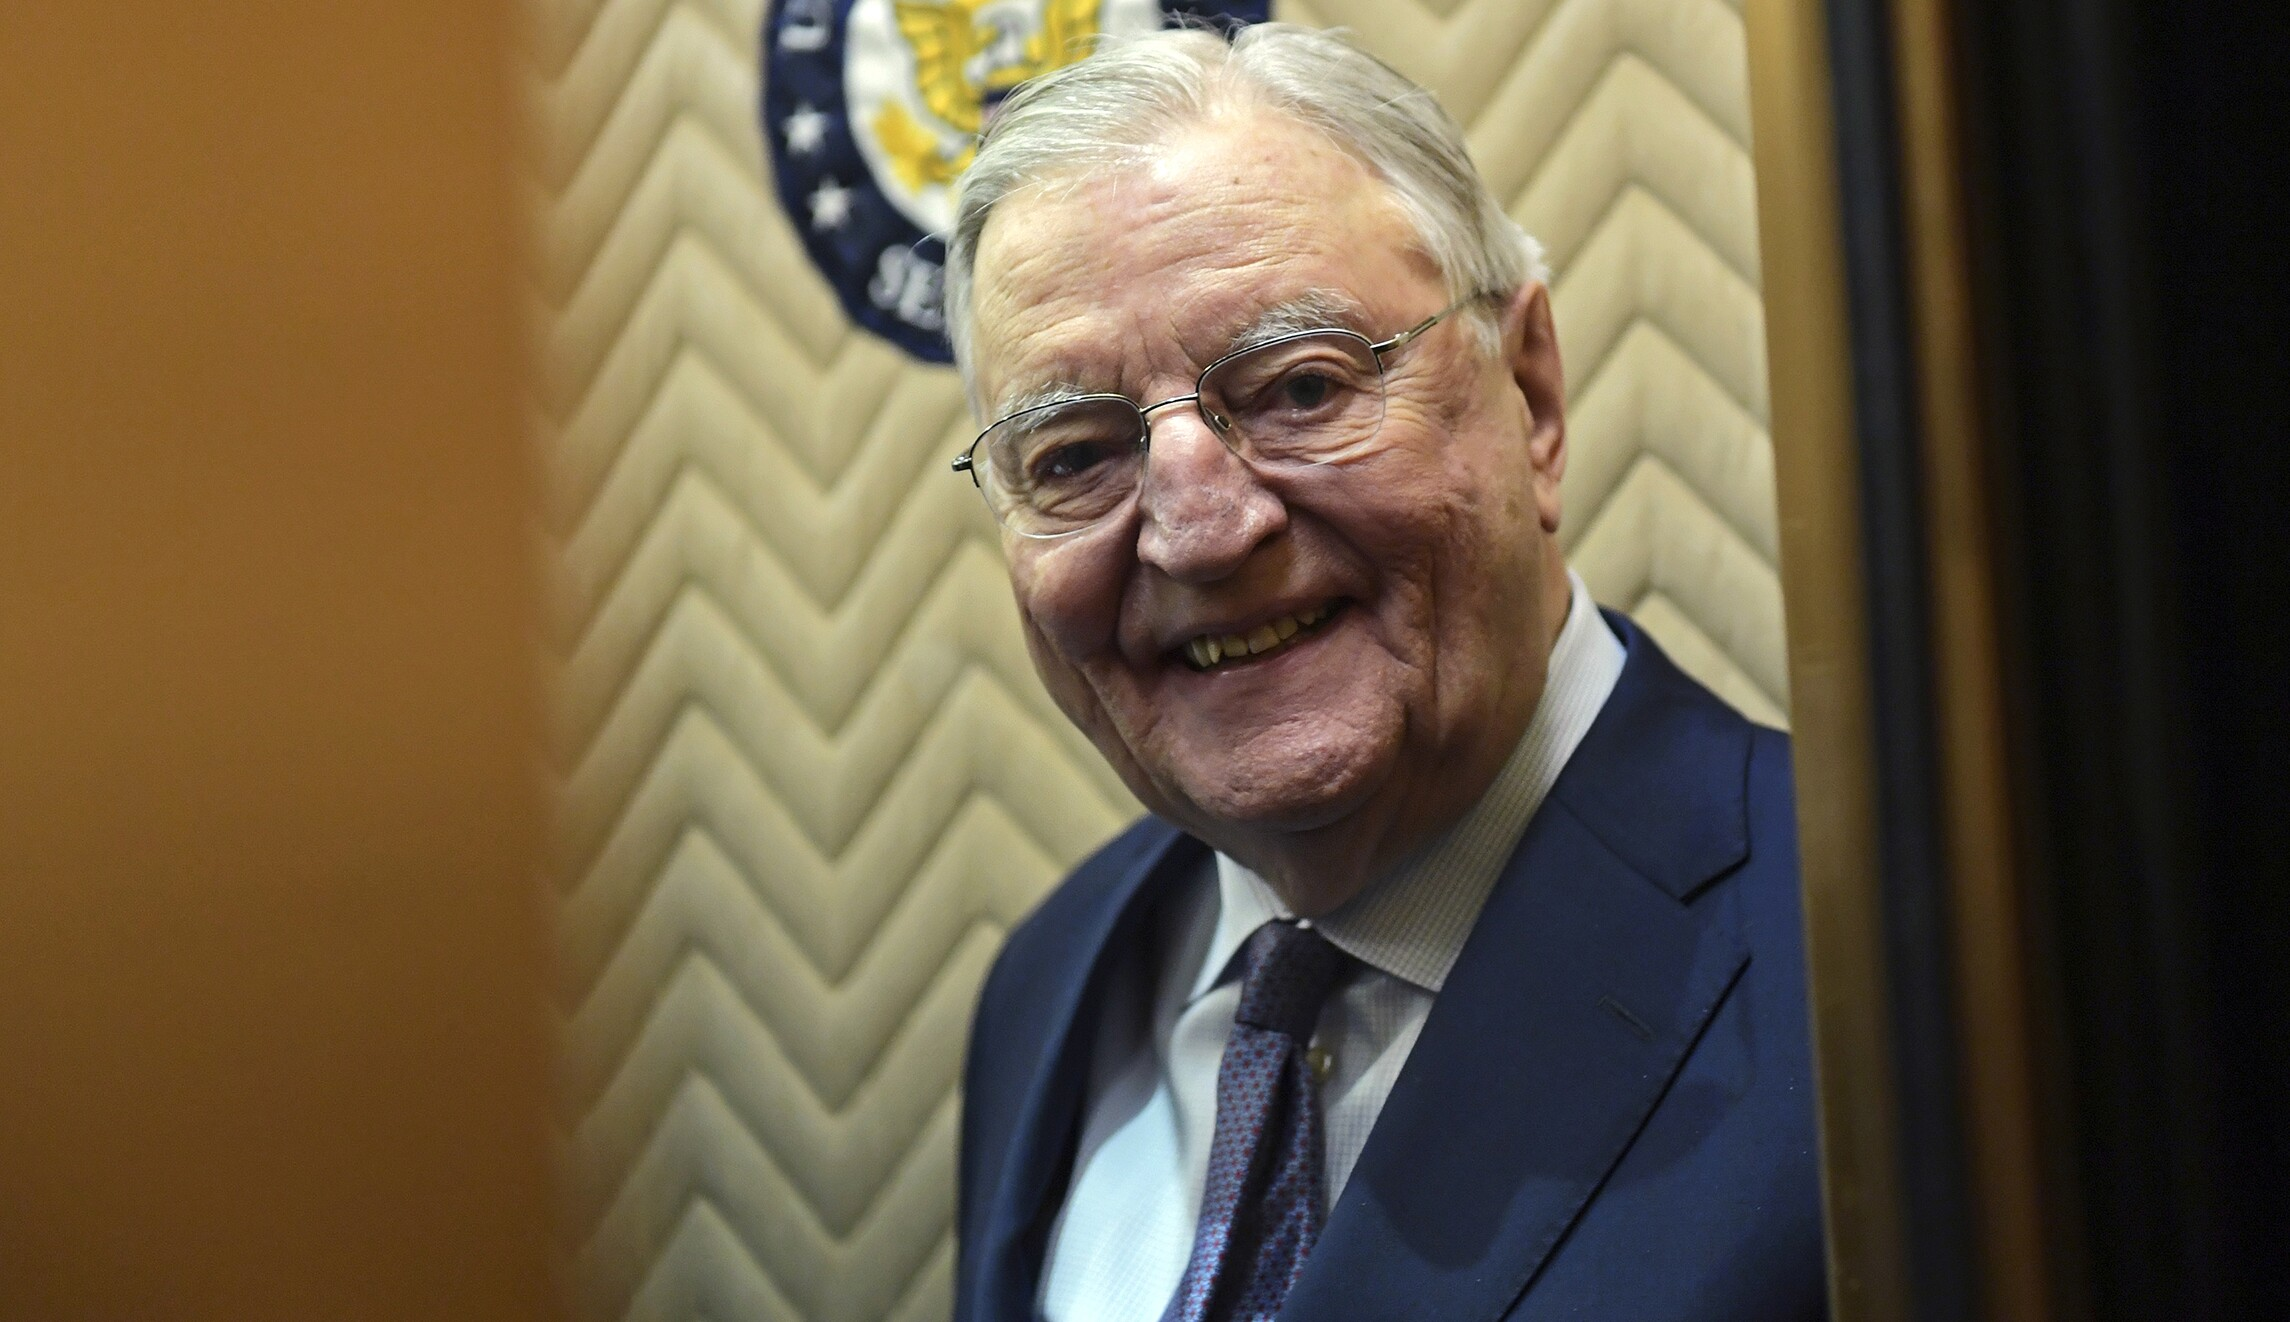 Michael Barone: Happy 90th birthday, Walter Mondale, and thanks